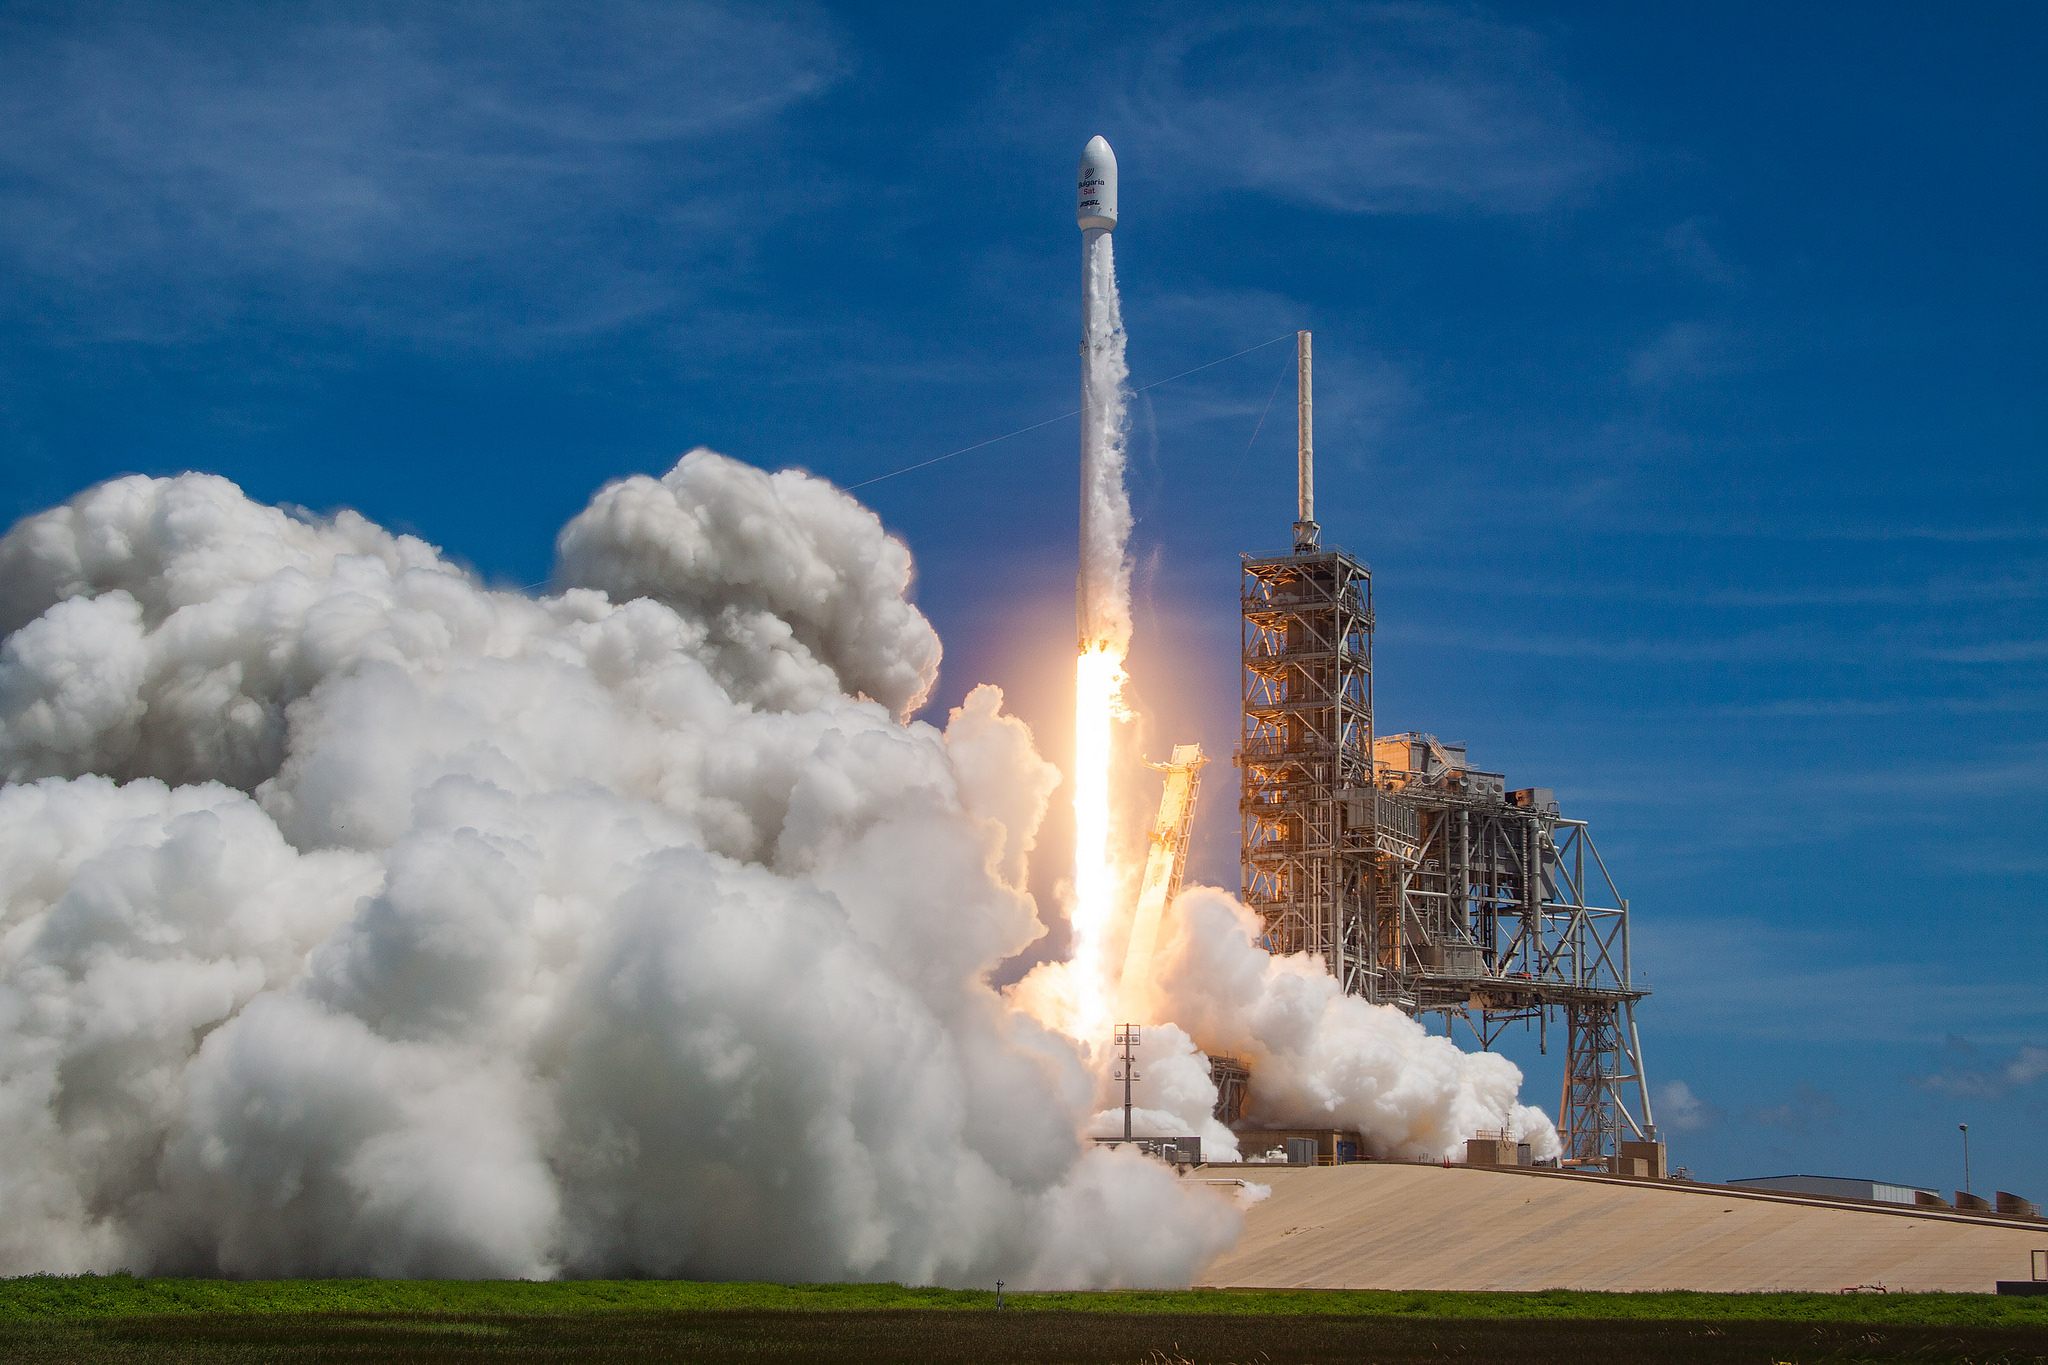 SpaceX's Falcon 9 spacecraft launches for the second time